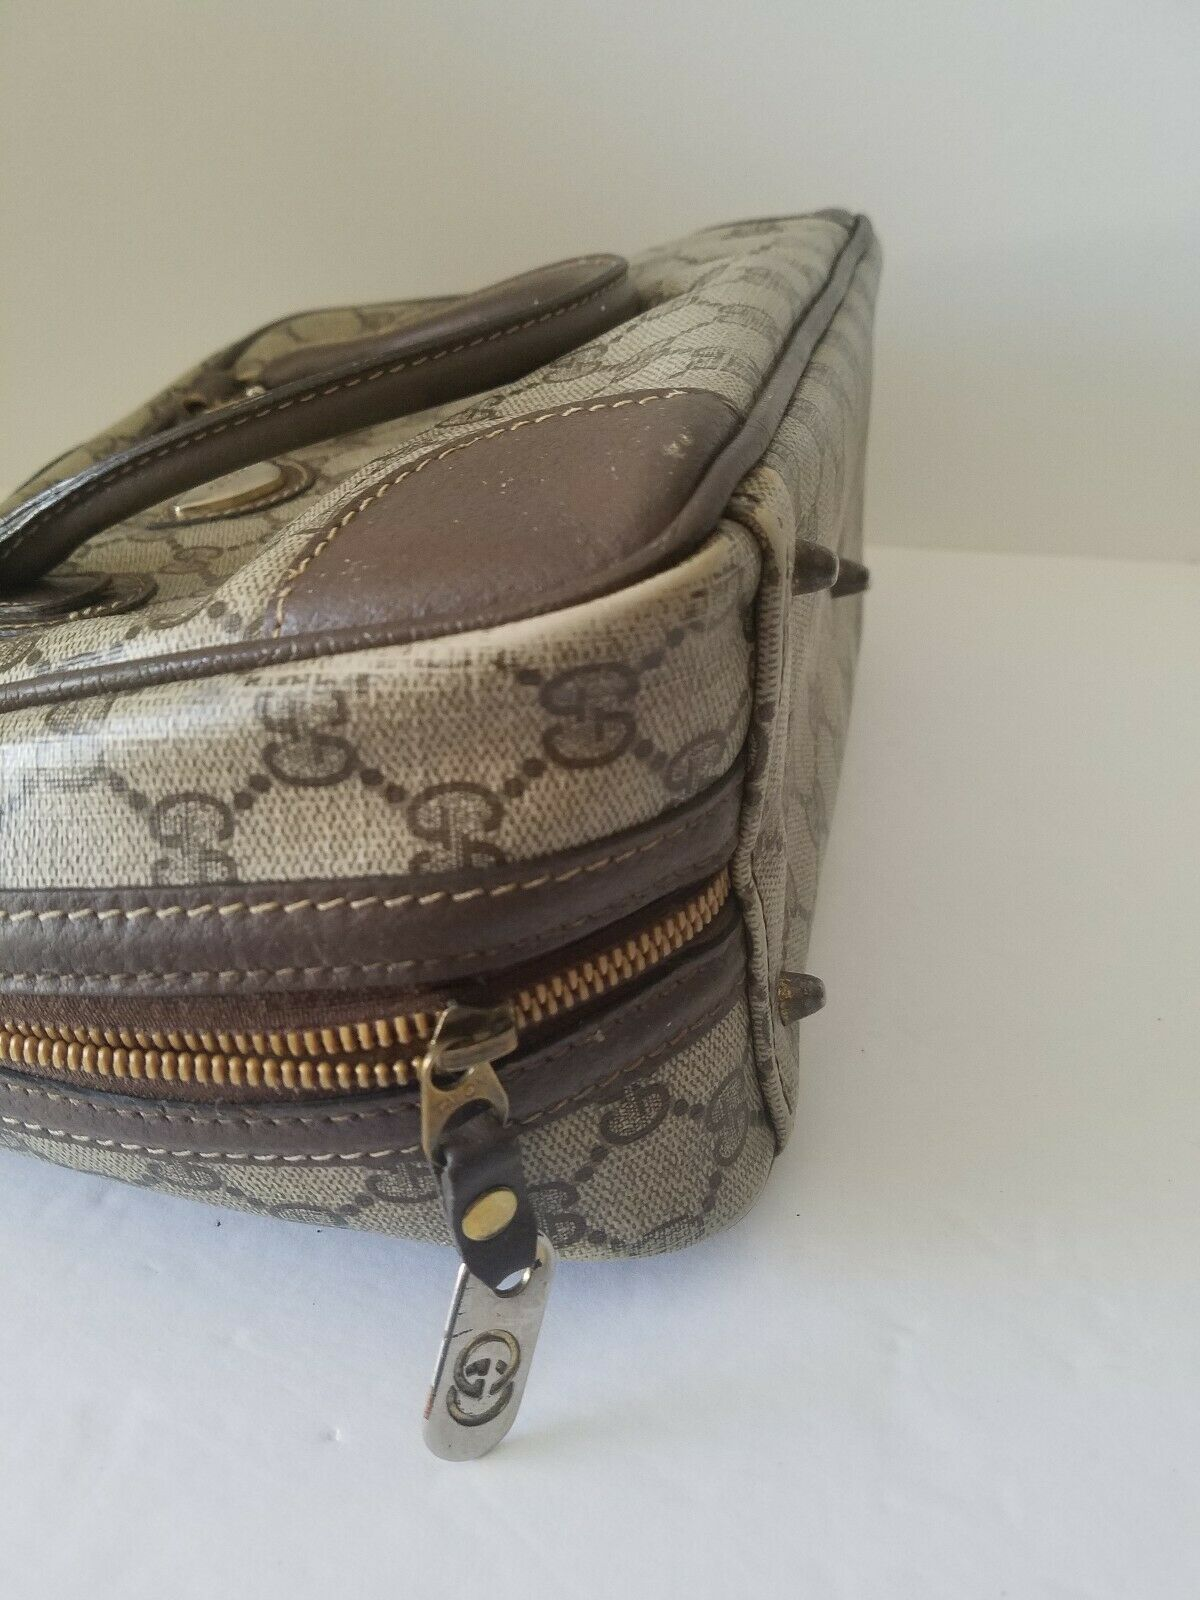 AUTHENTIC GUCCI GG MONOGRAM LEATHER/PVC DOCTOR BA… - image 12